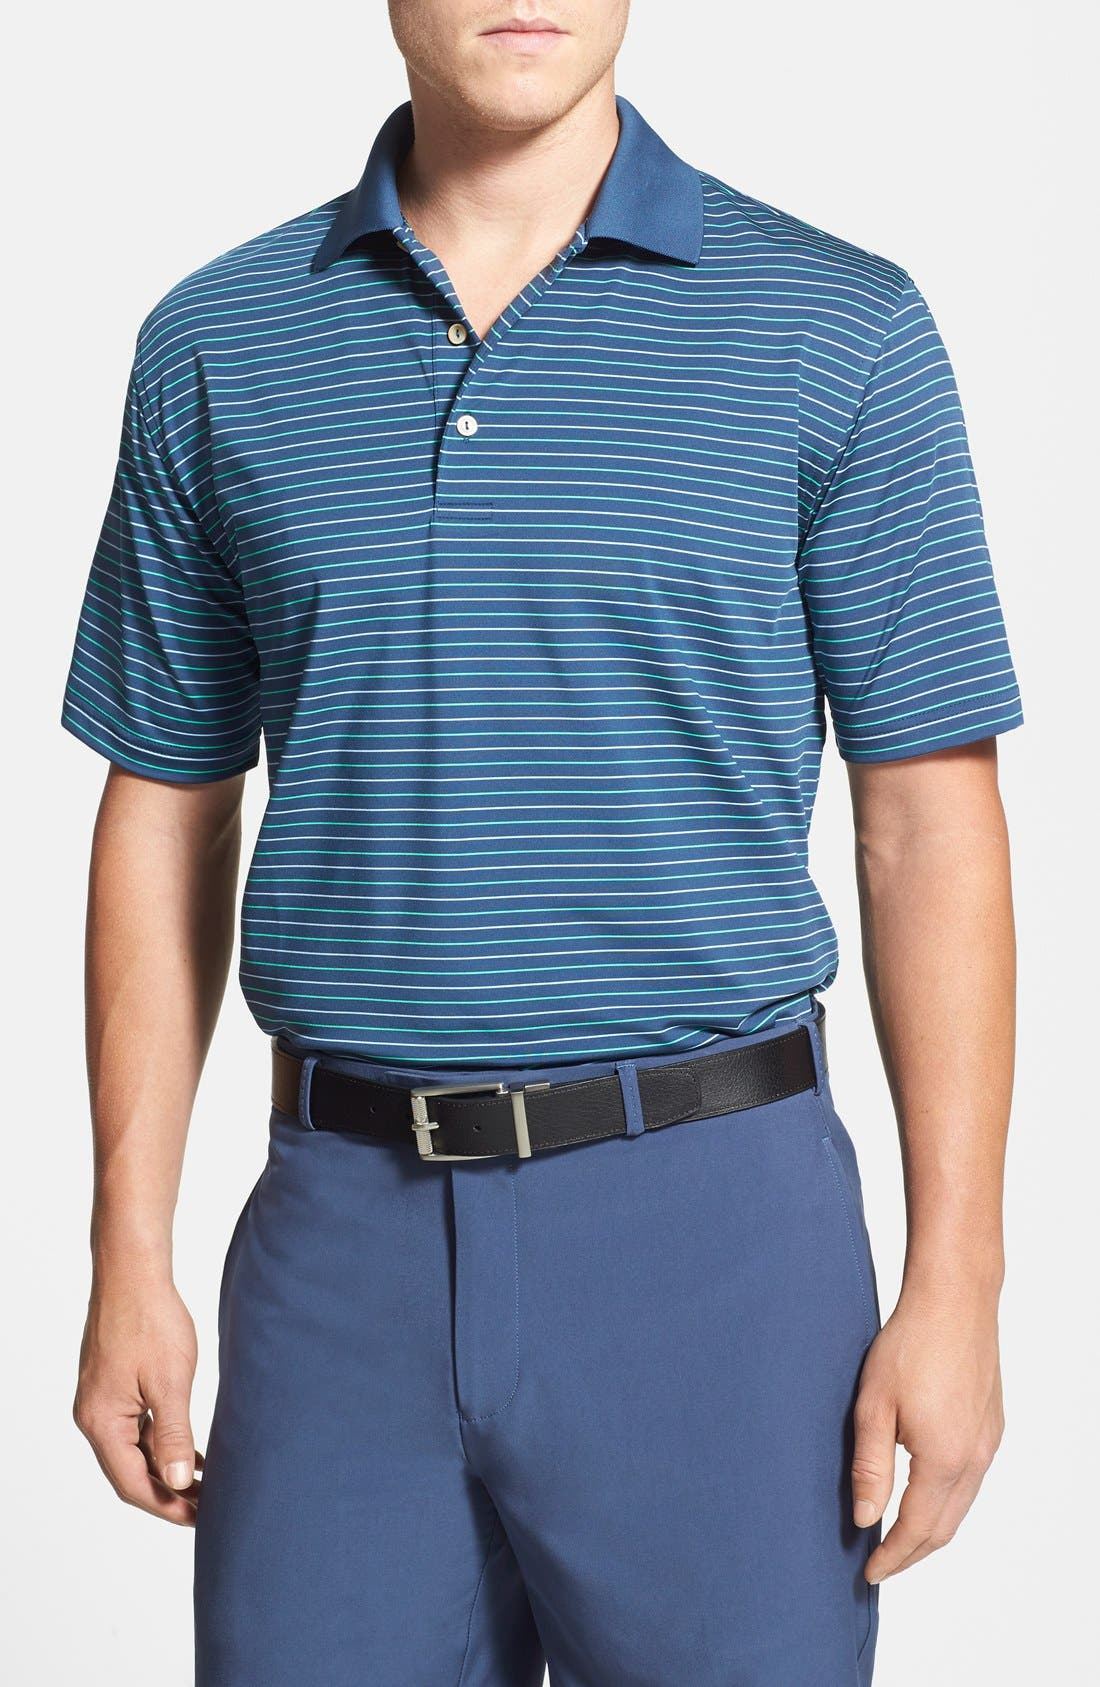 Alternate Image 1 Selected - Peter Millar 'Harnett' Stripe Stretch Jersey Polo